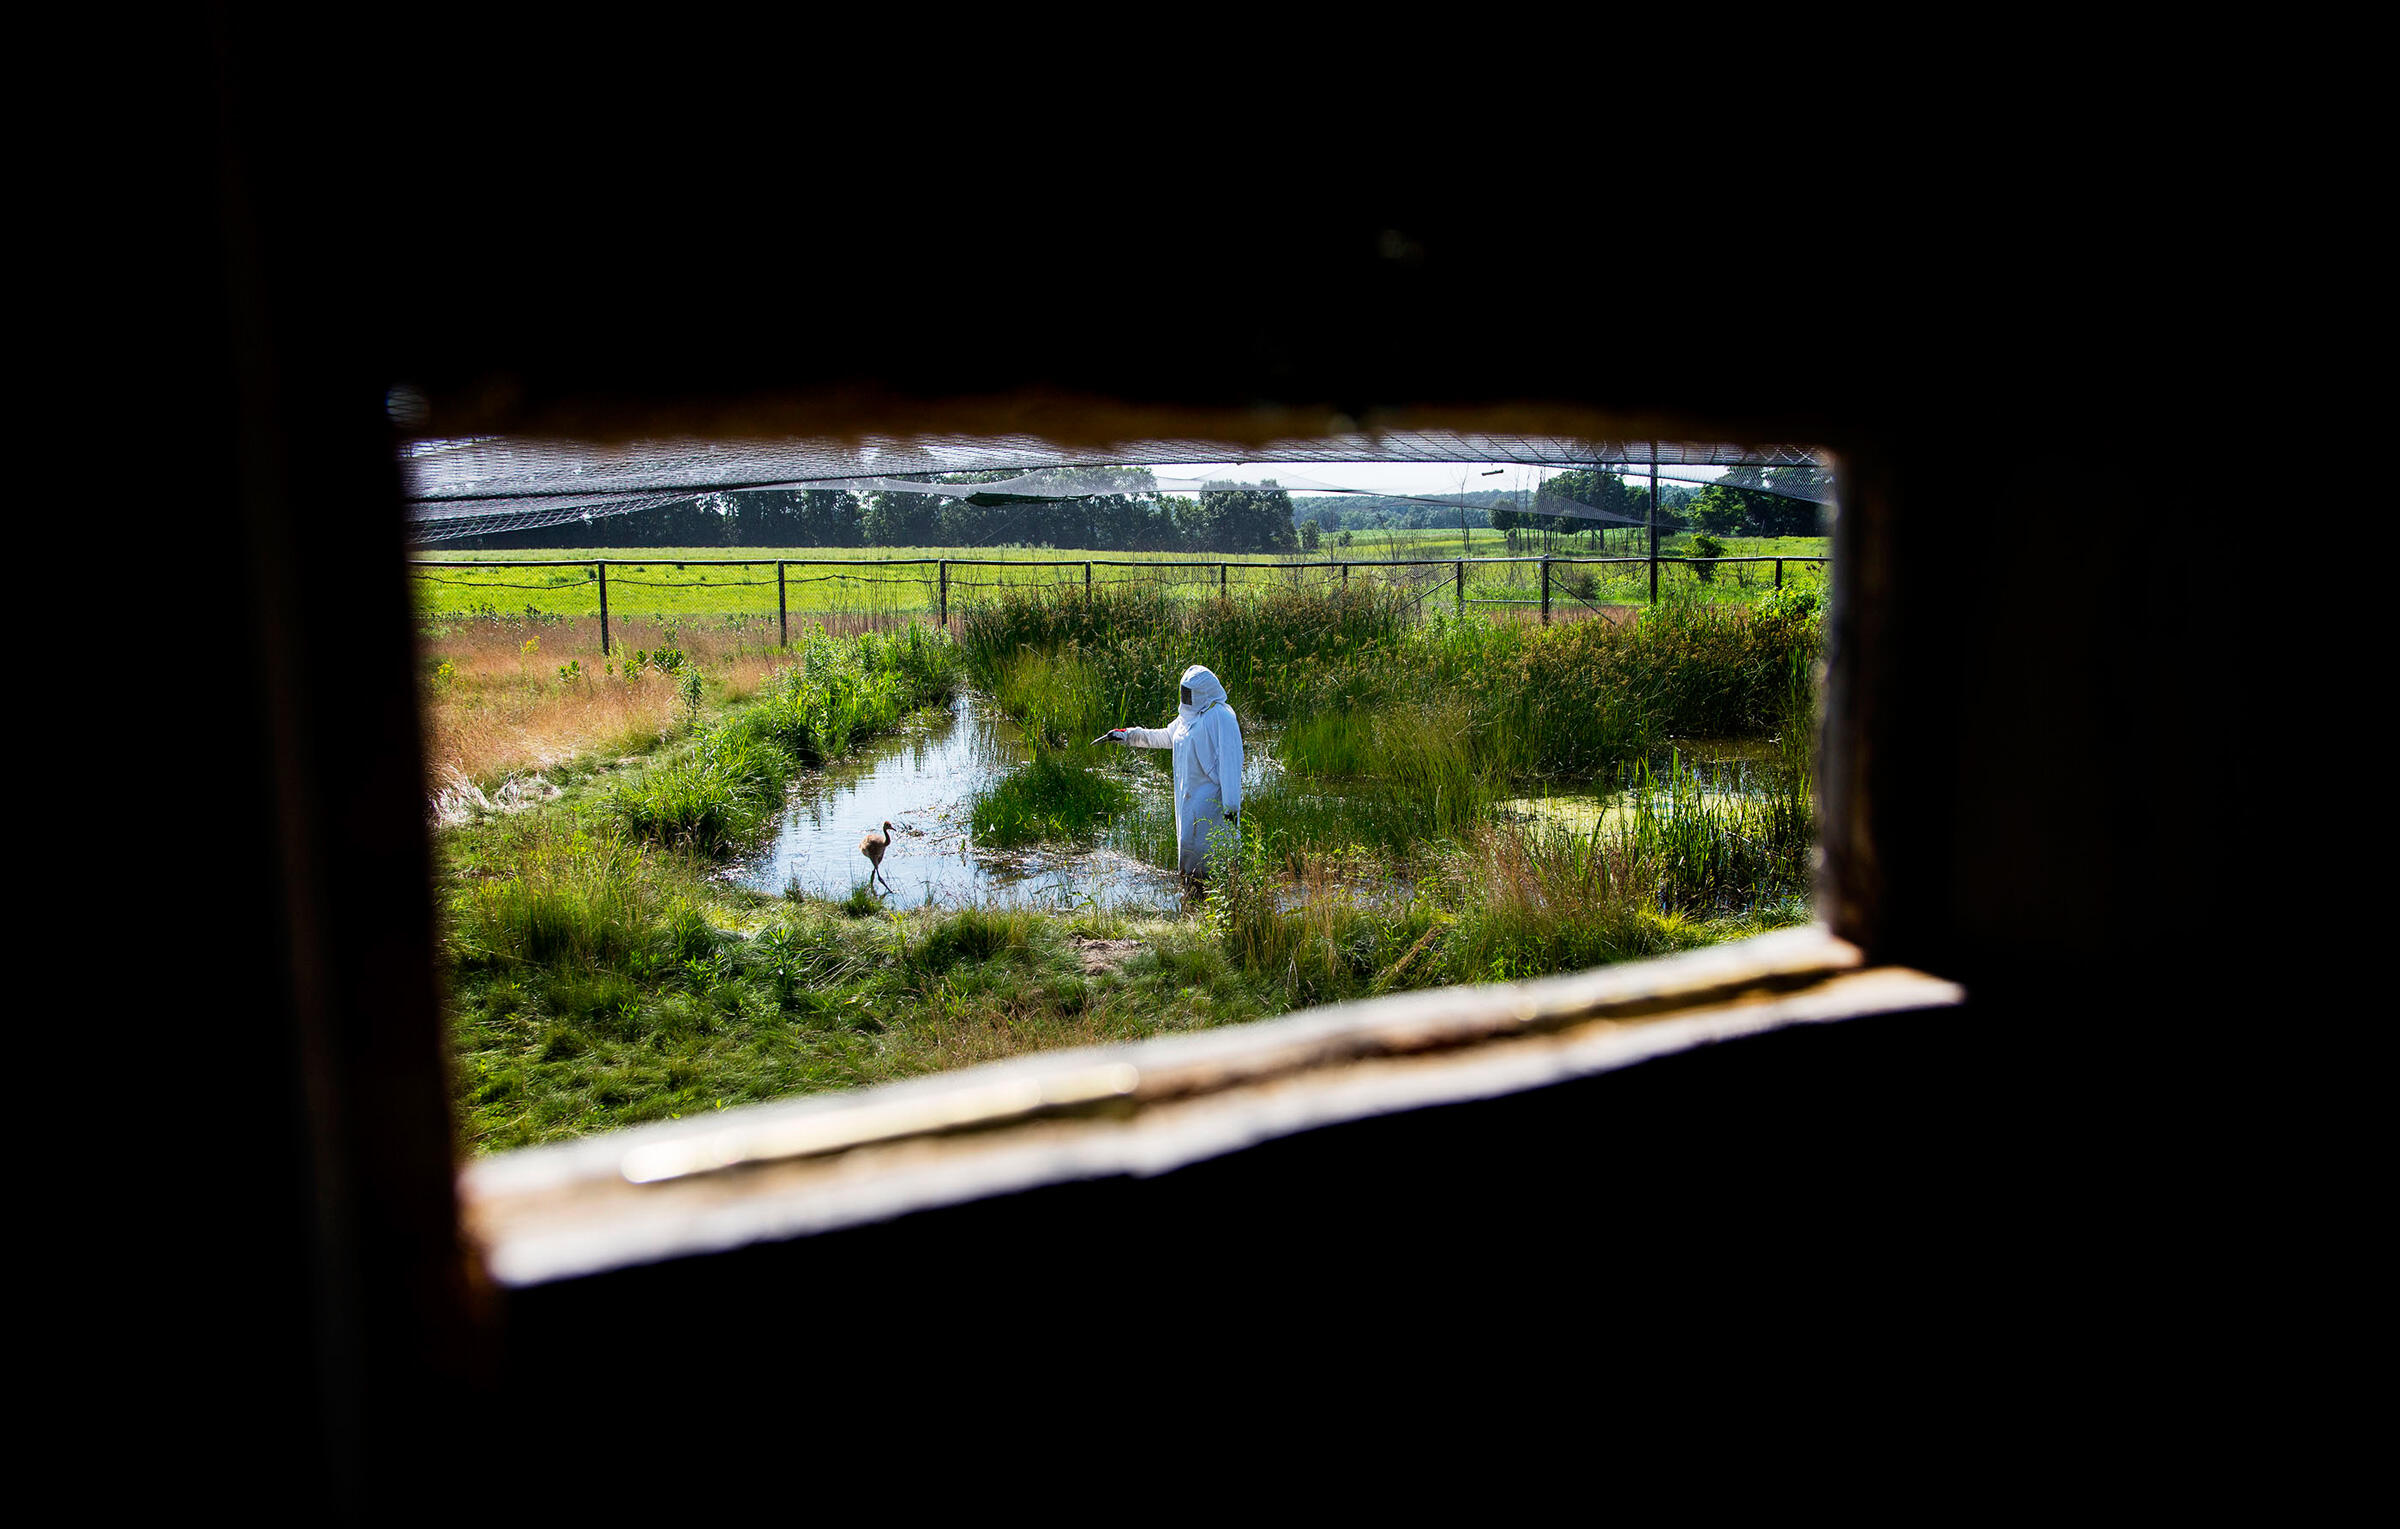 The view from a blind at the ICF, where a young Whooping Crane is wading through a marsh under the watchful eye of an aviculturist. Tom Lynn